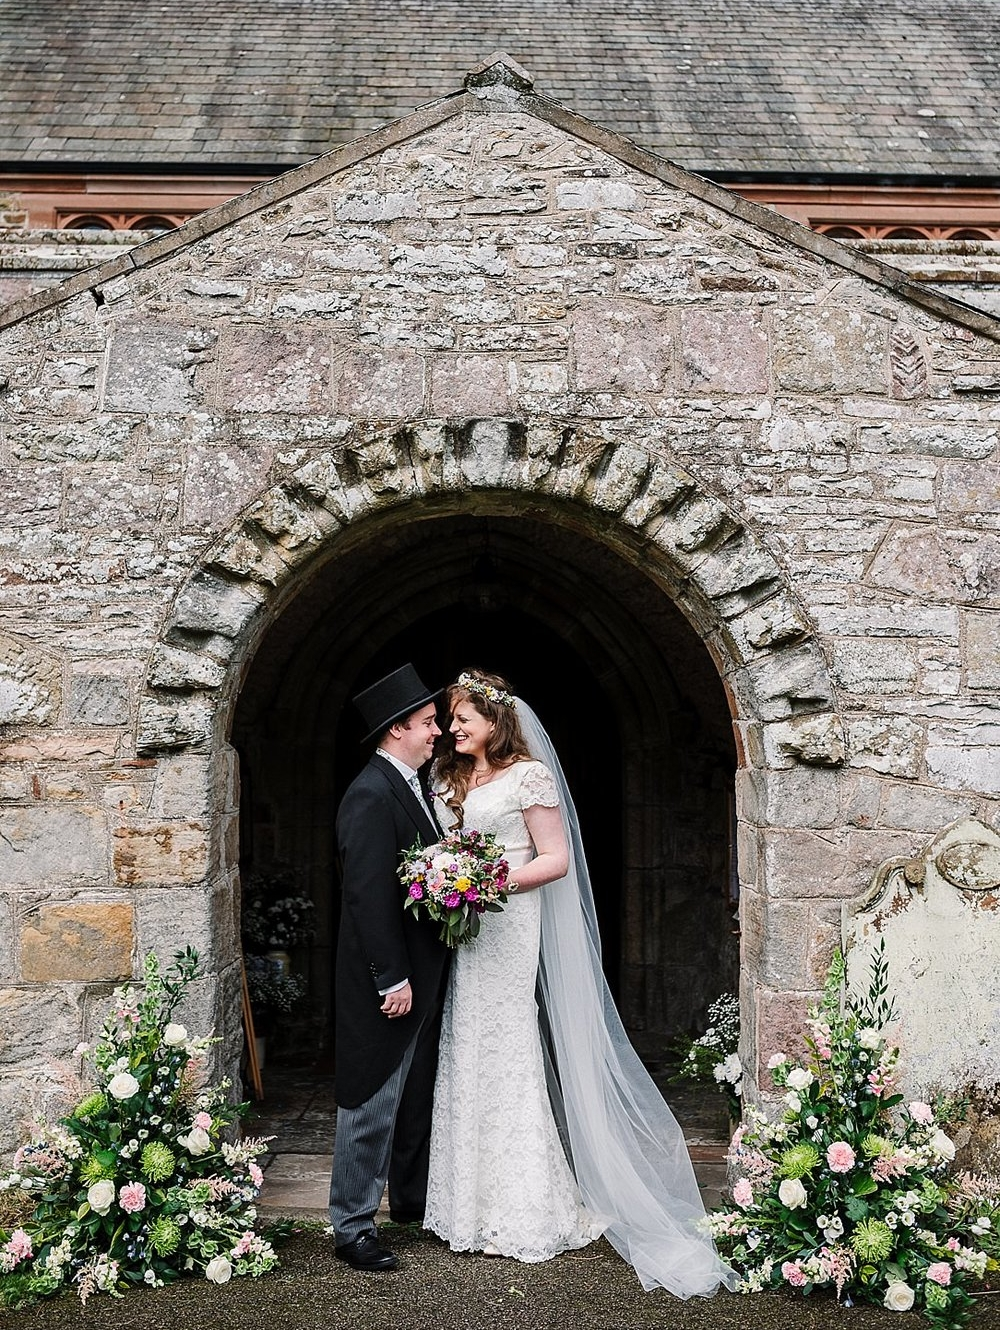 A VINTAGE STYLED VILLAGE HALL WEDDING IN THE LAKE DISTRICT